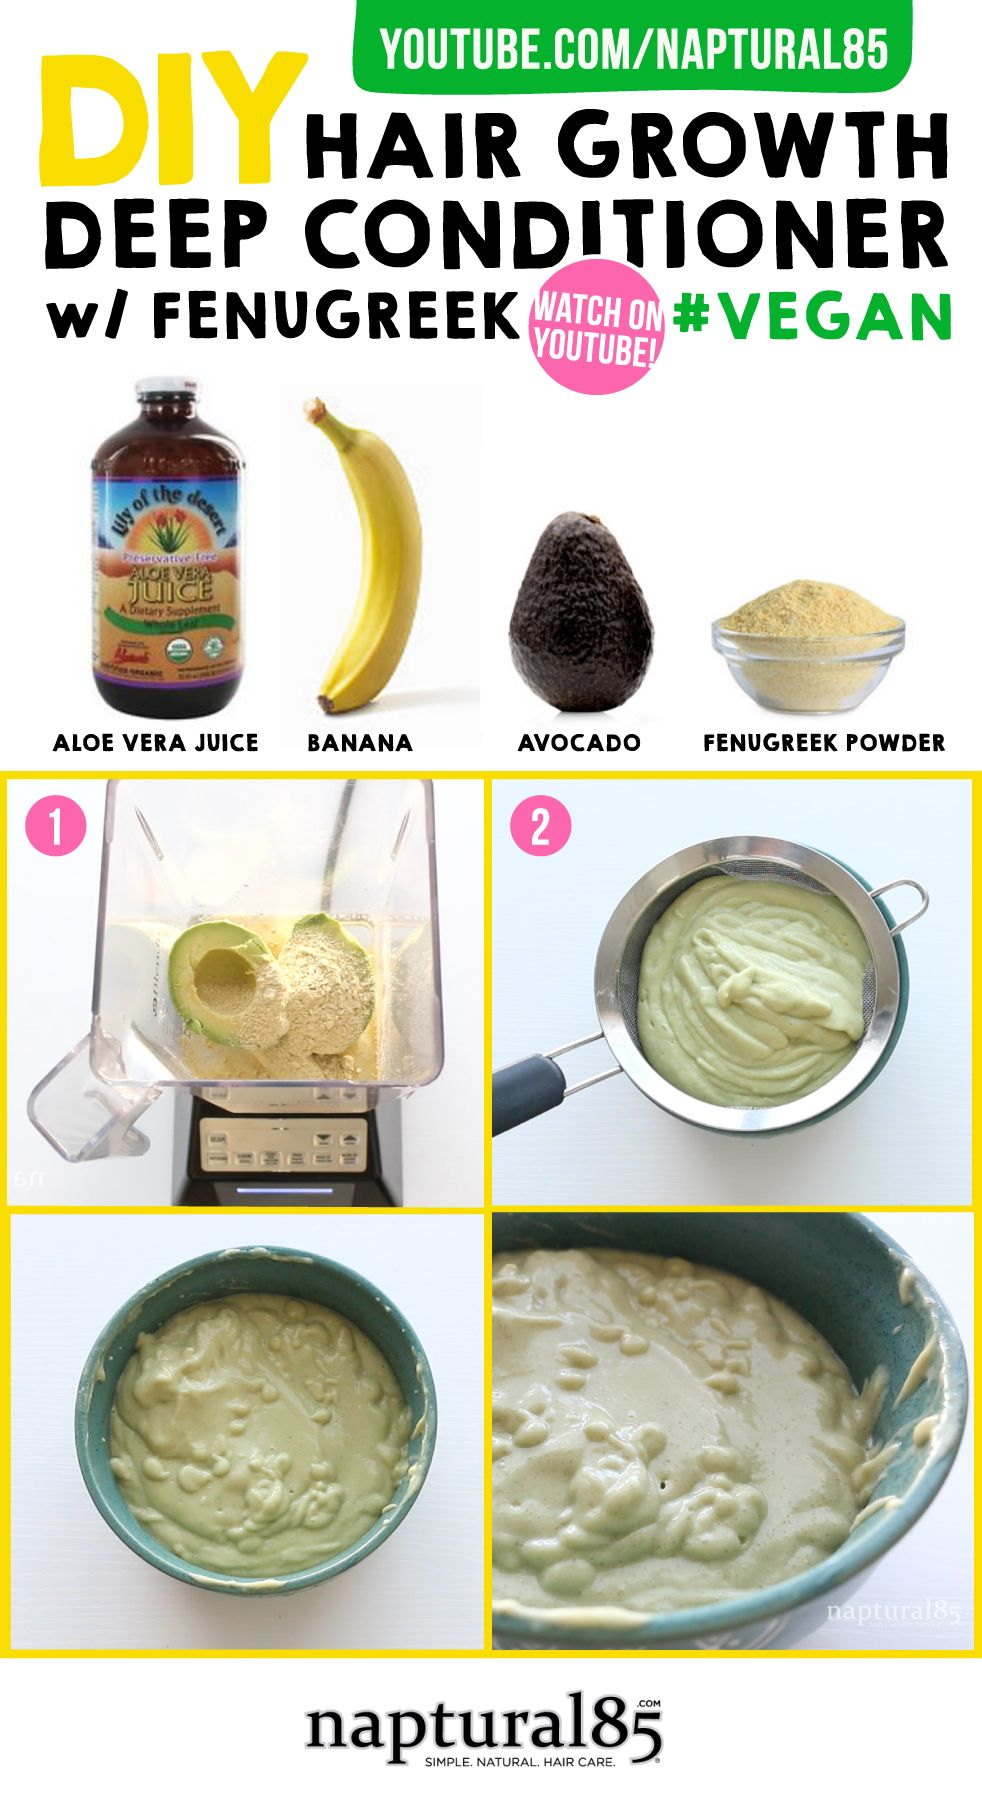 I Ve Been Meaning To Try A Mask With Banana And Avocado Natural Hair Diy Hair Mask For Growth Natural Hair Care Tips